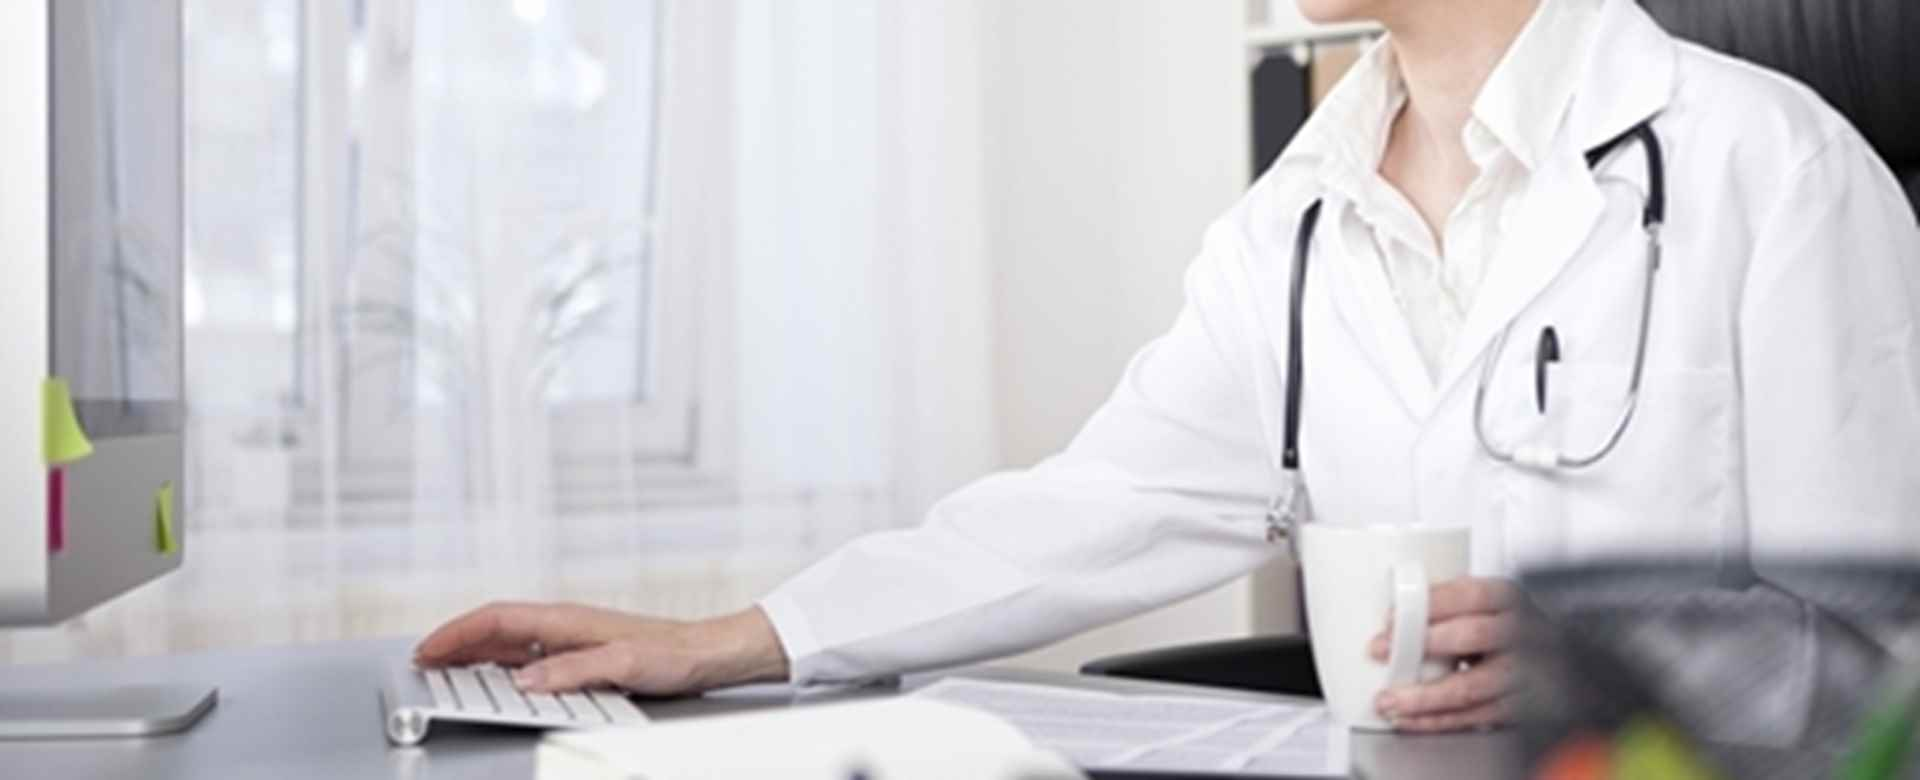 A Closer Look at Evidence-based Medicine Benefits and Guidelines